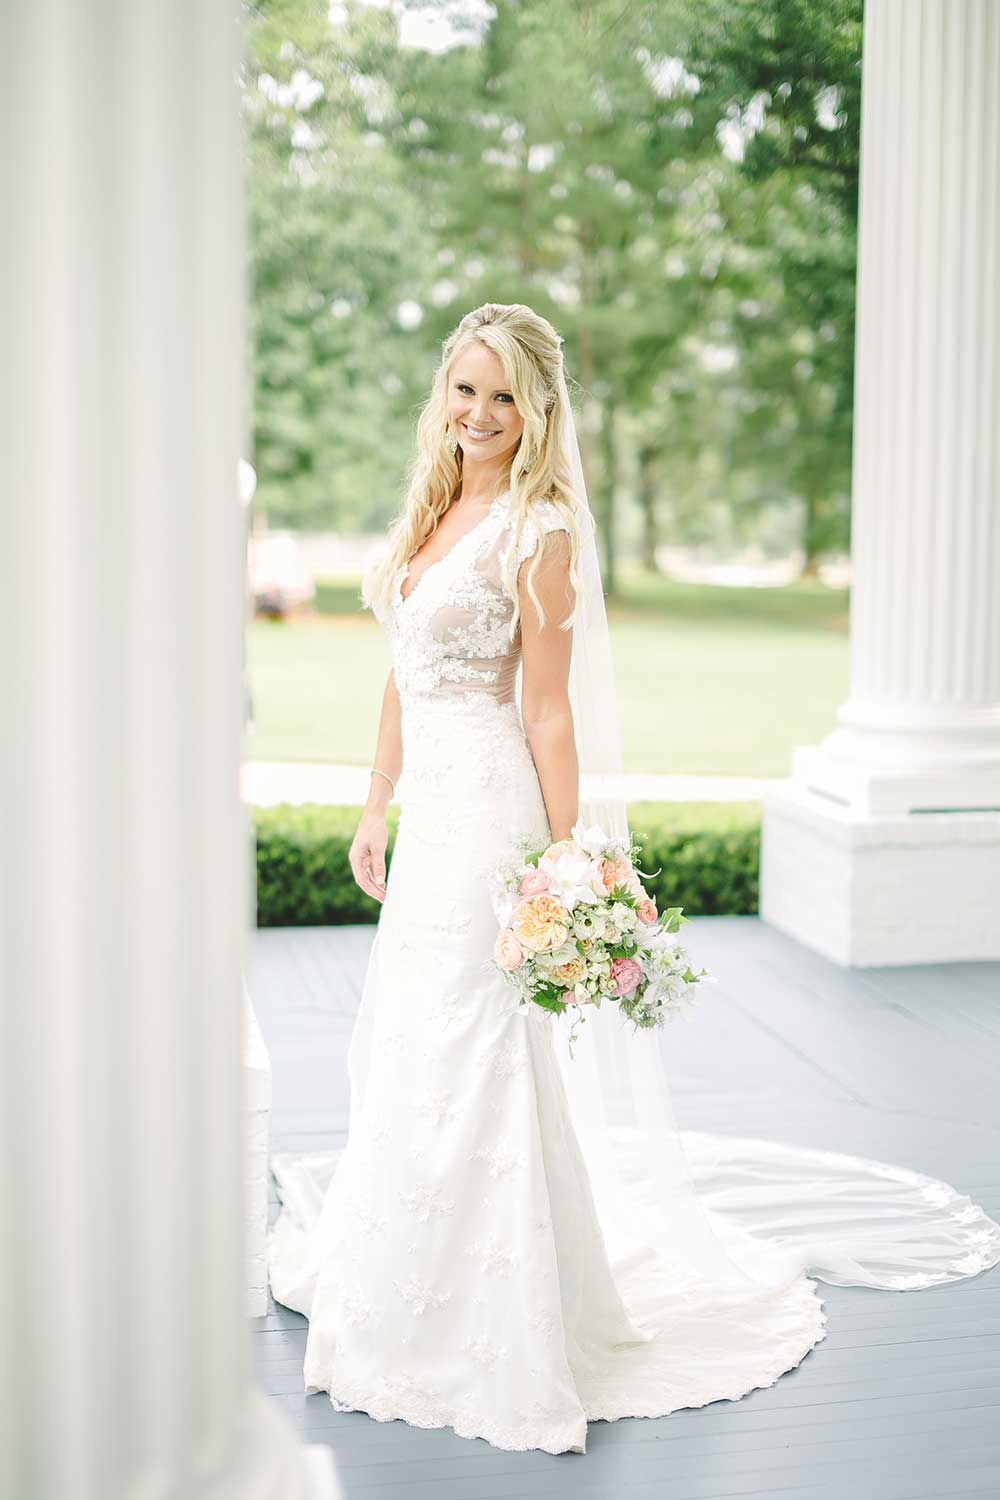 Southern Bride In Lace Dress Carrying Pastel Fl Bouquet